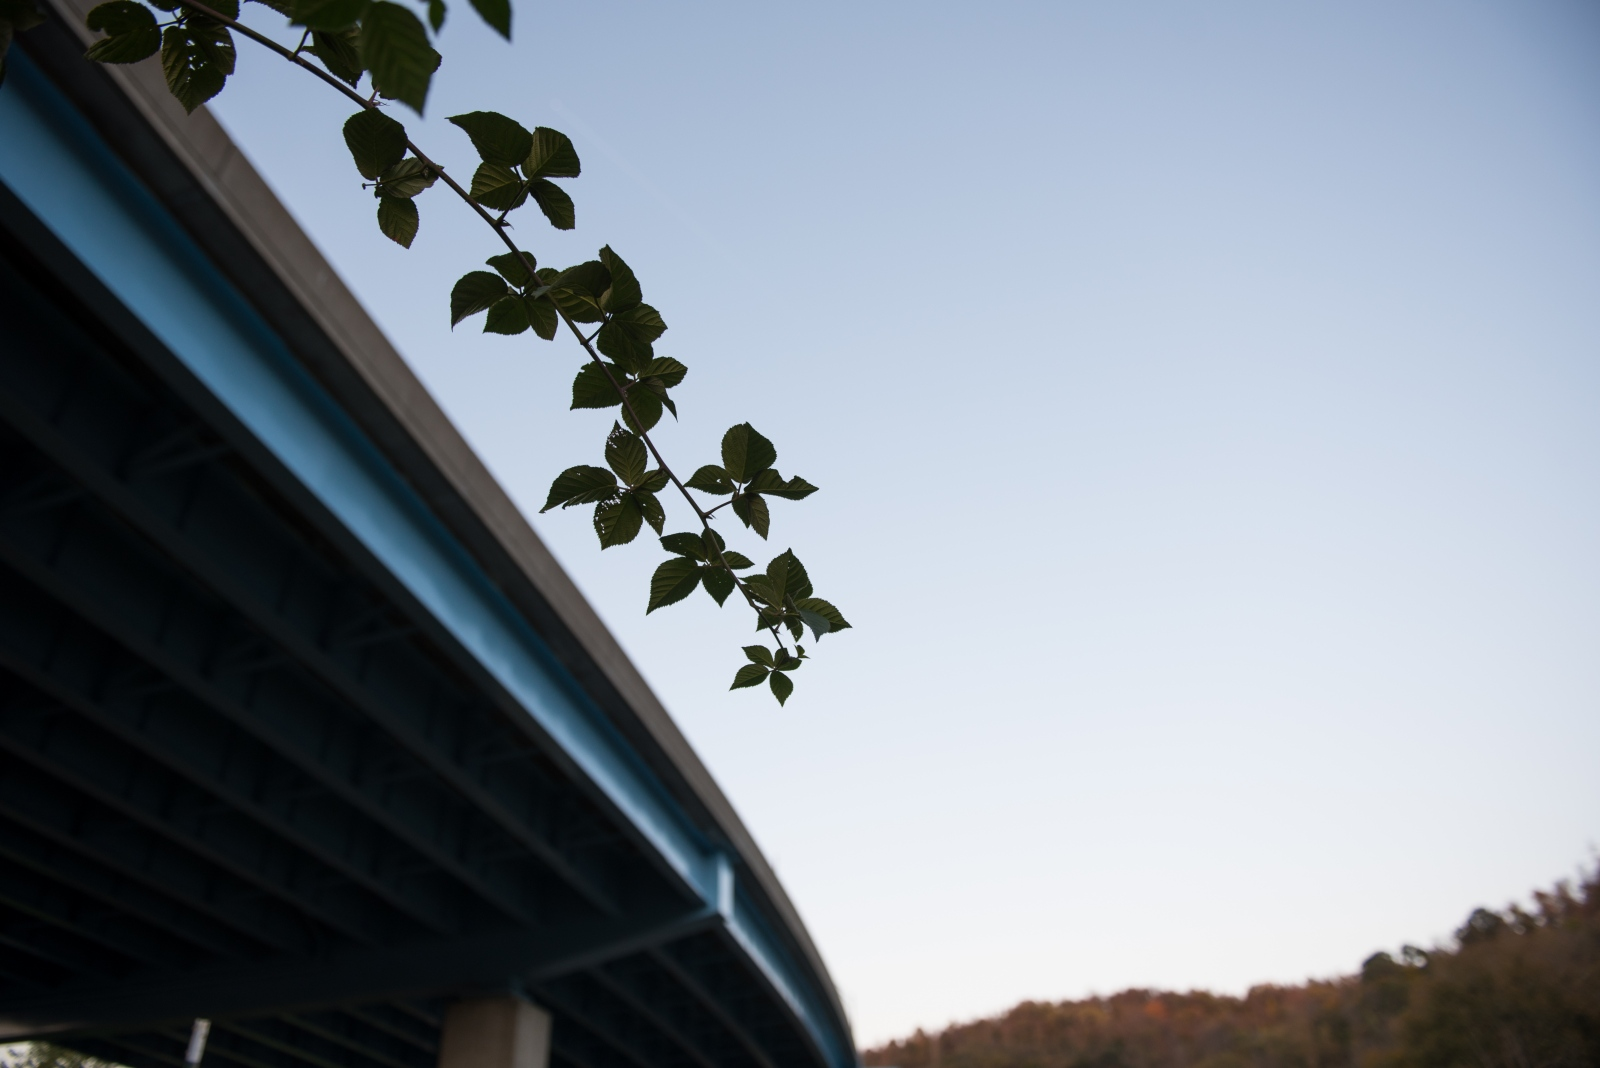 A blackberry branch grows on Farm 18 beneath an overpass in East Wheeling. The construction of the highway through this area led to the destruction of some of the neighborhood's buildings. The urban farm, which is tended by the organization Grow Ohio Valley, now helps provide fresh, healthy produce in what is often considered a food desert.